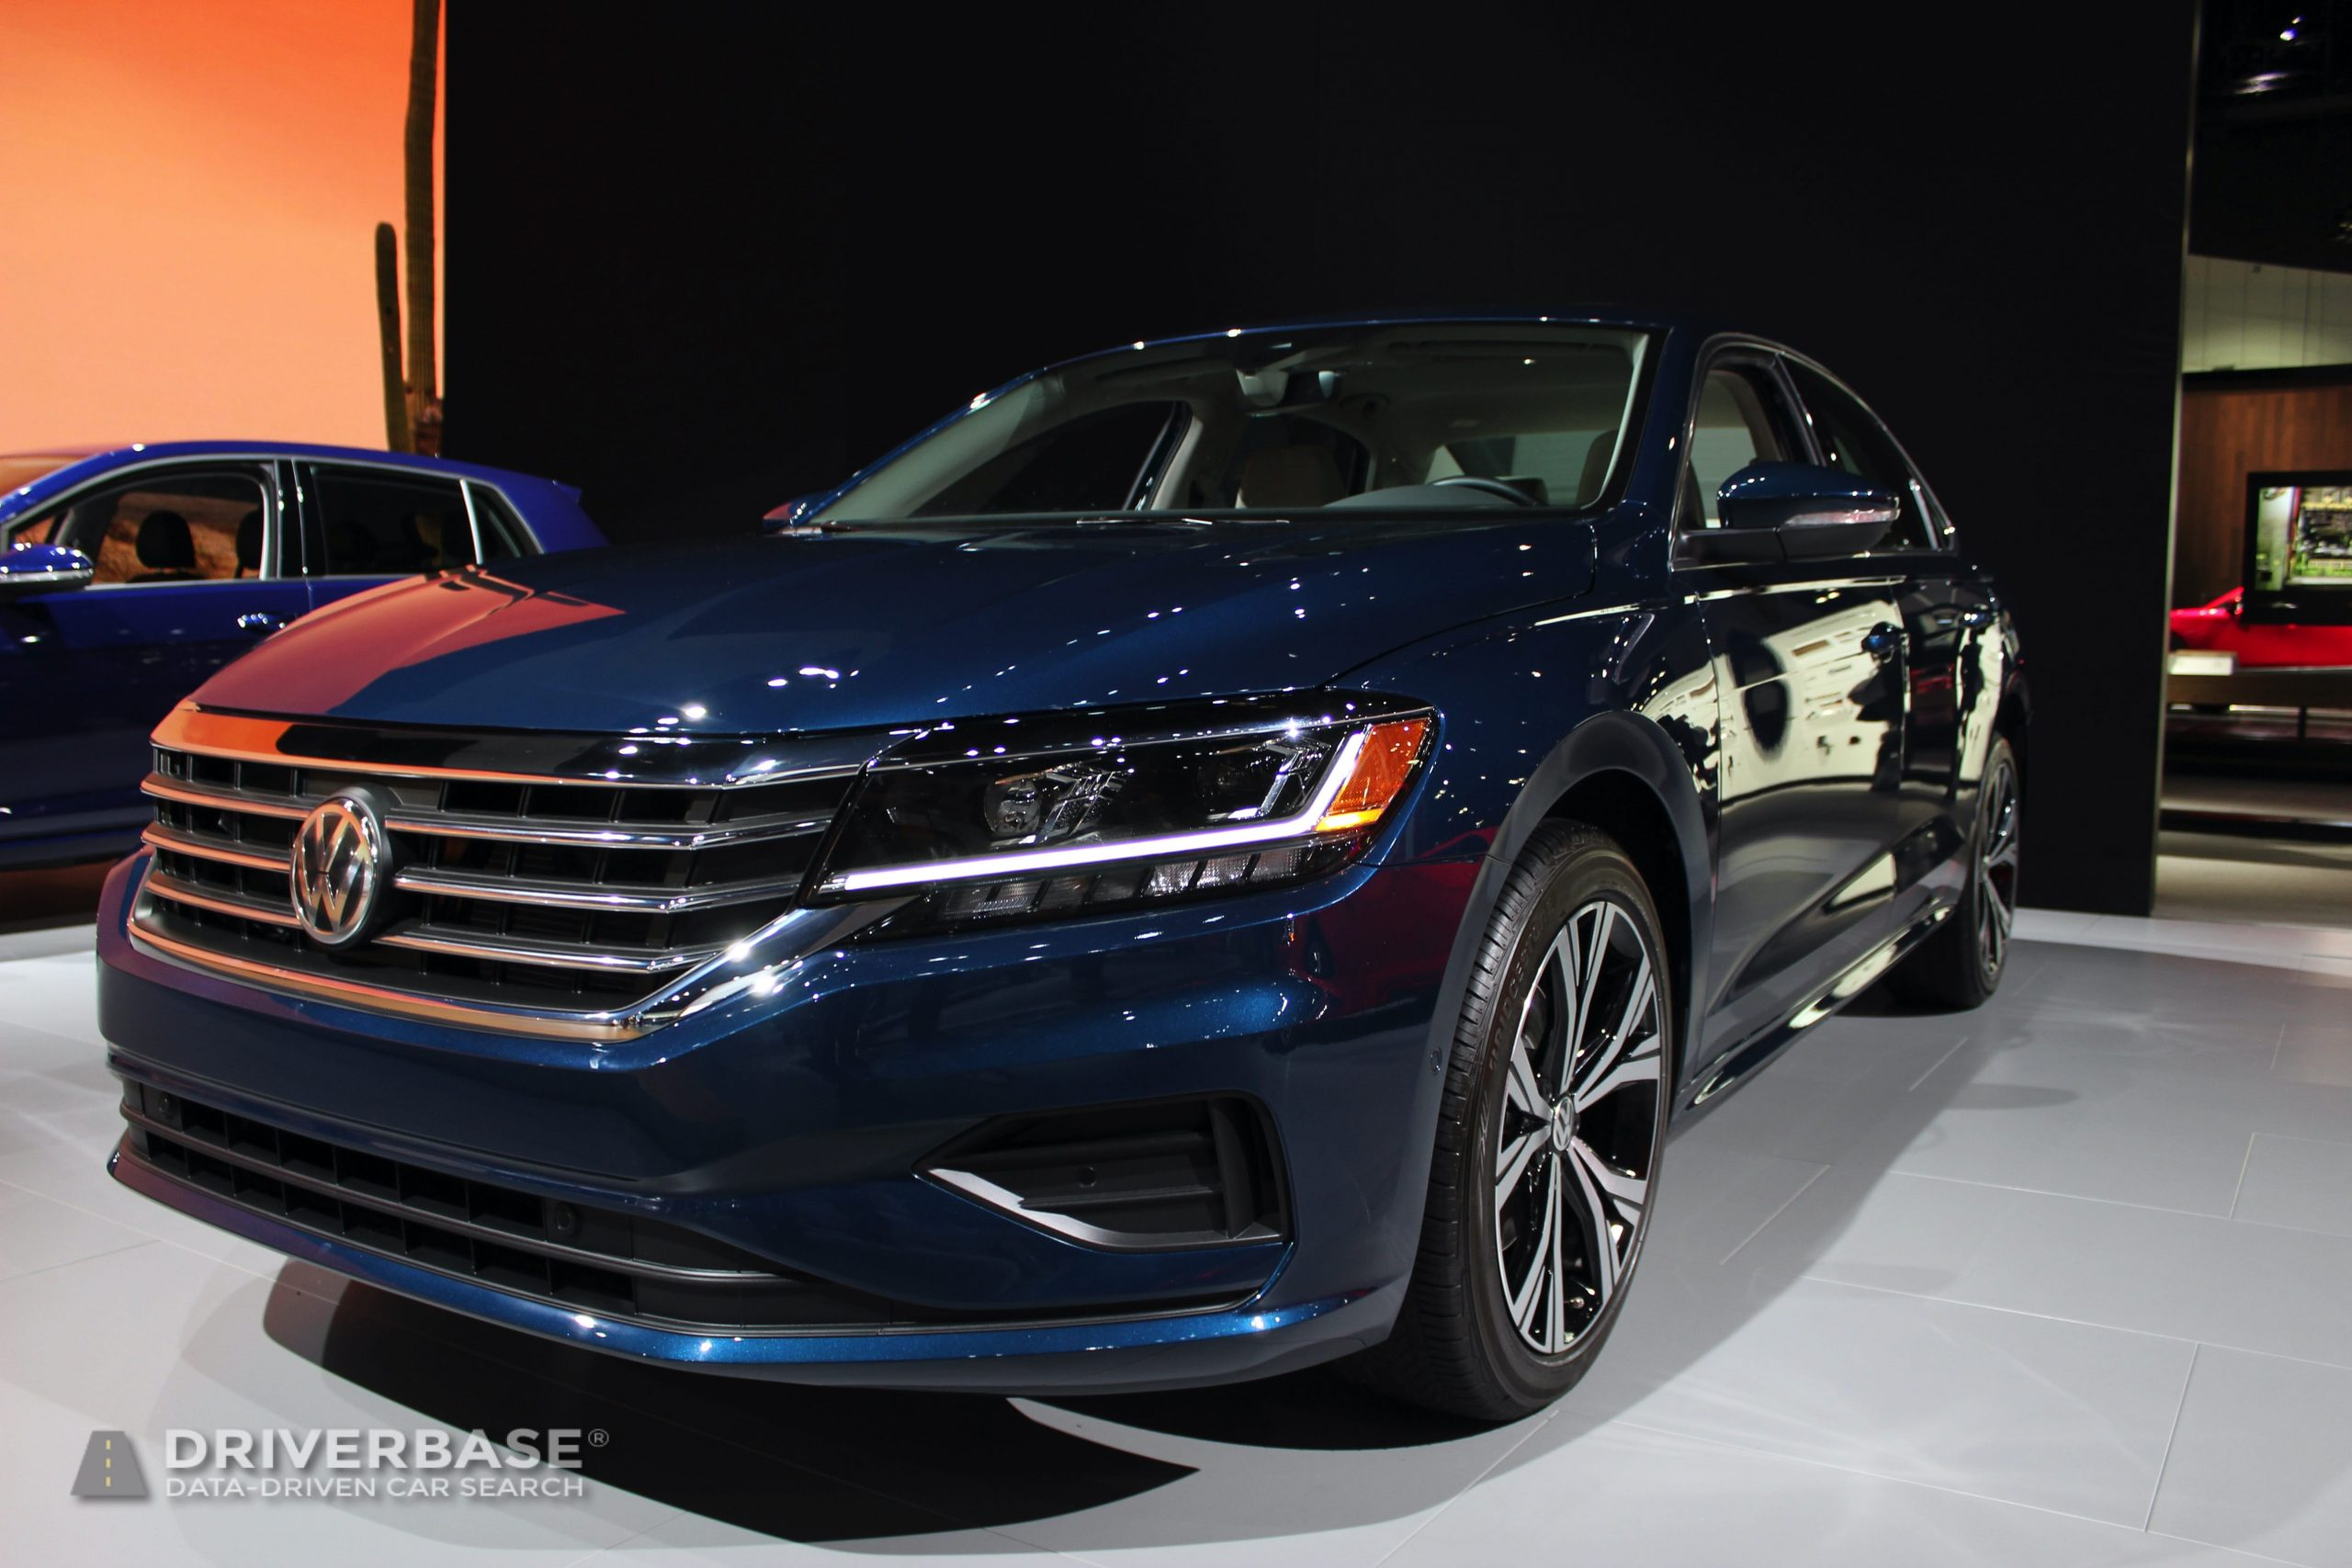 2020 Volkswagen Passat at the 2019 Los Angeles Auto Show